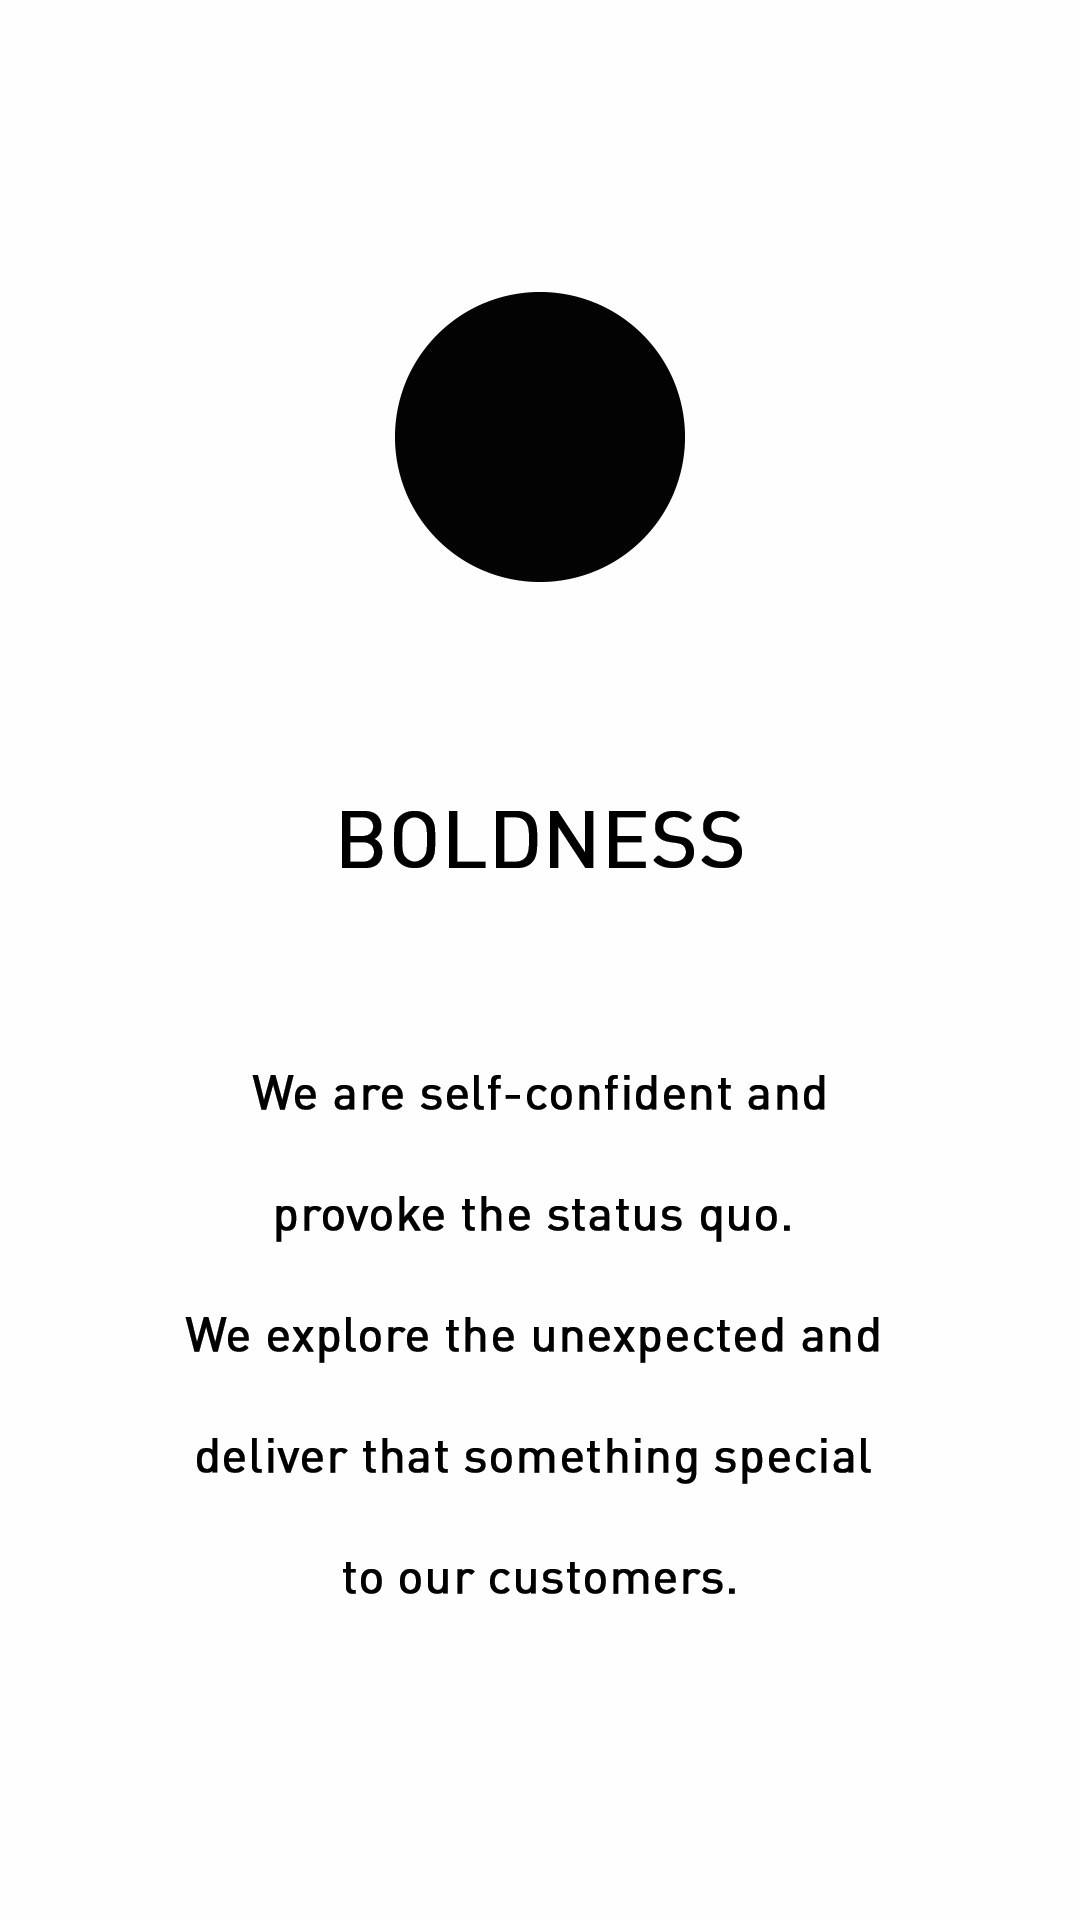 Entwurfreich Core Value Boldness